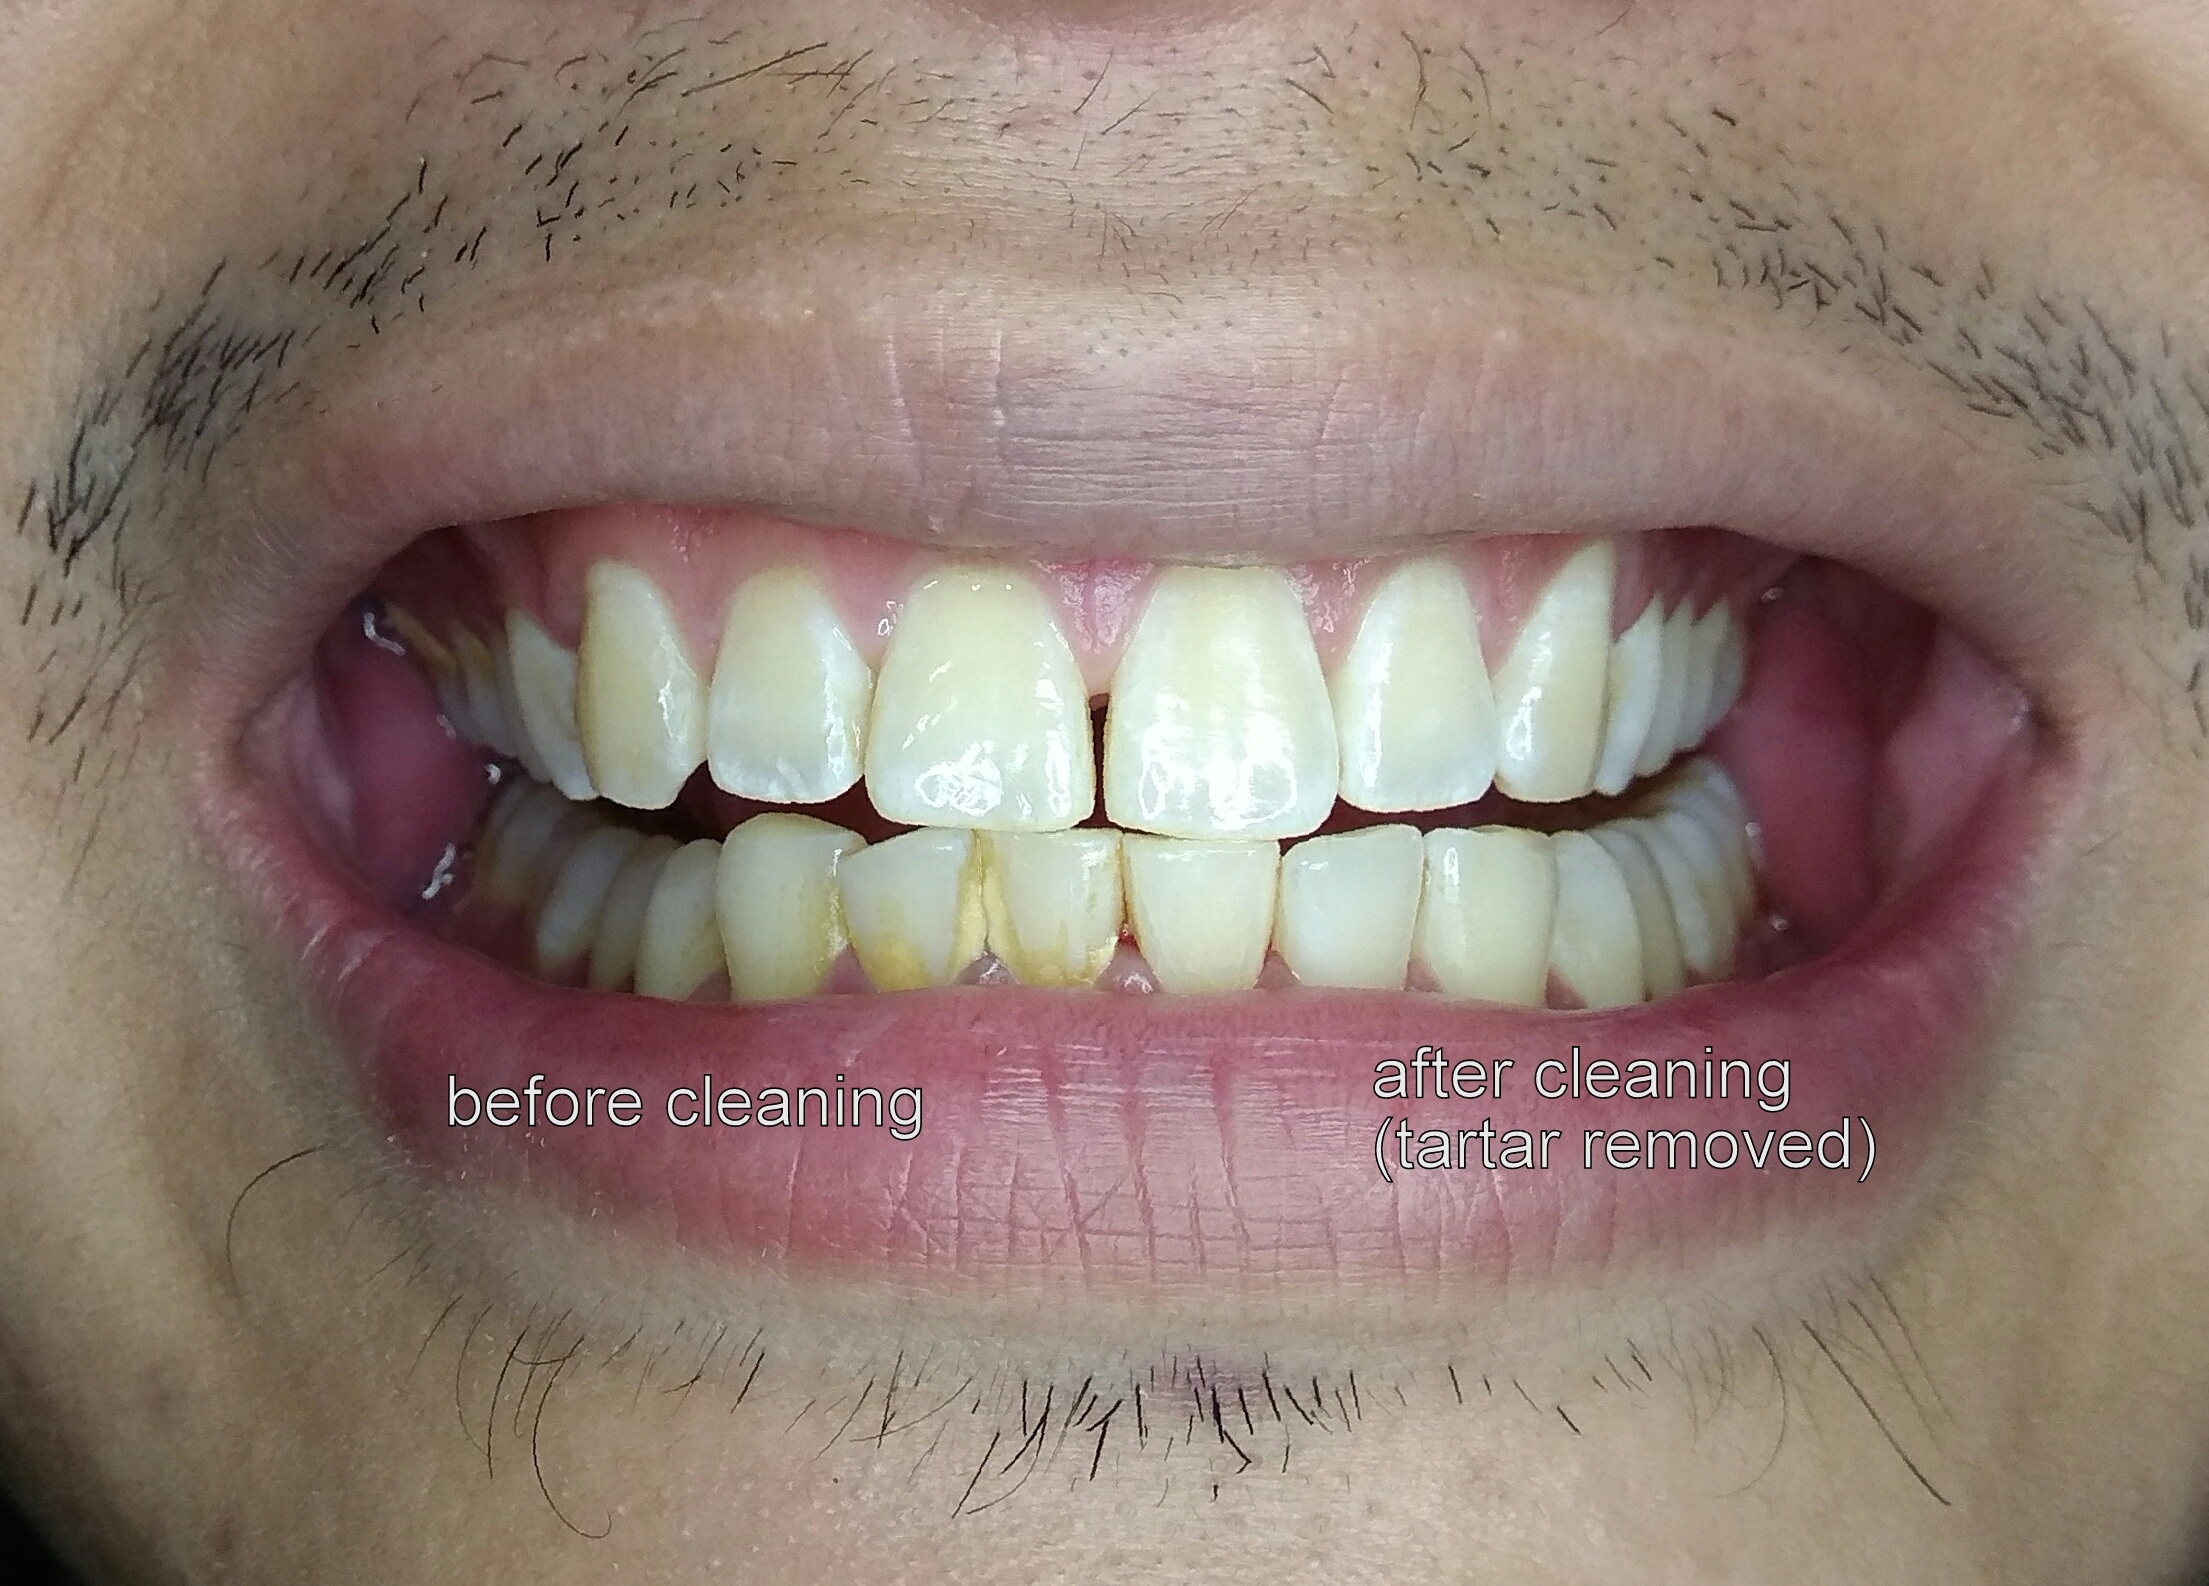 oral prophylaxis - before and after